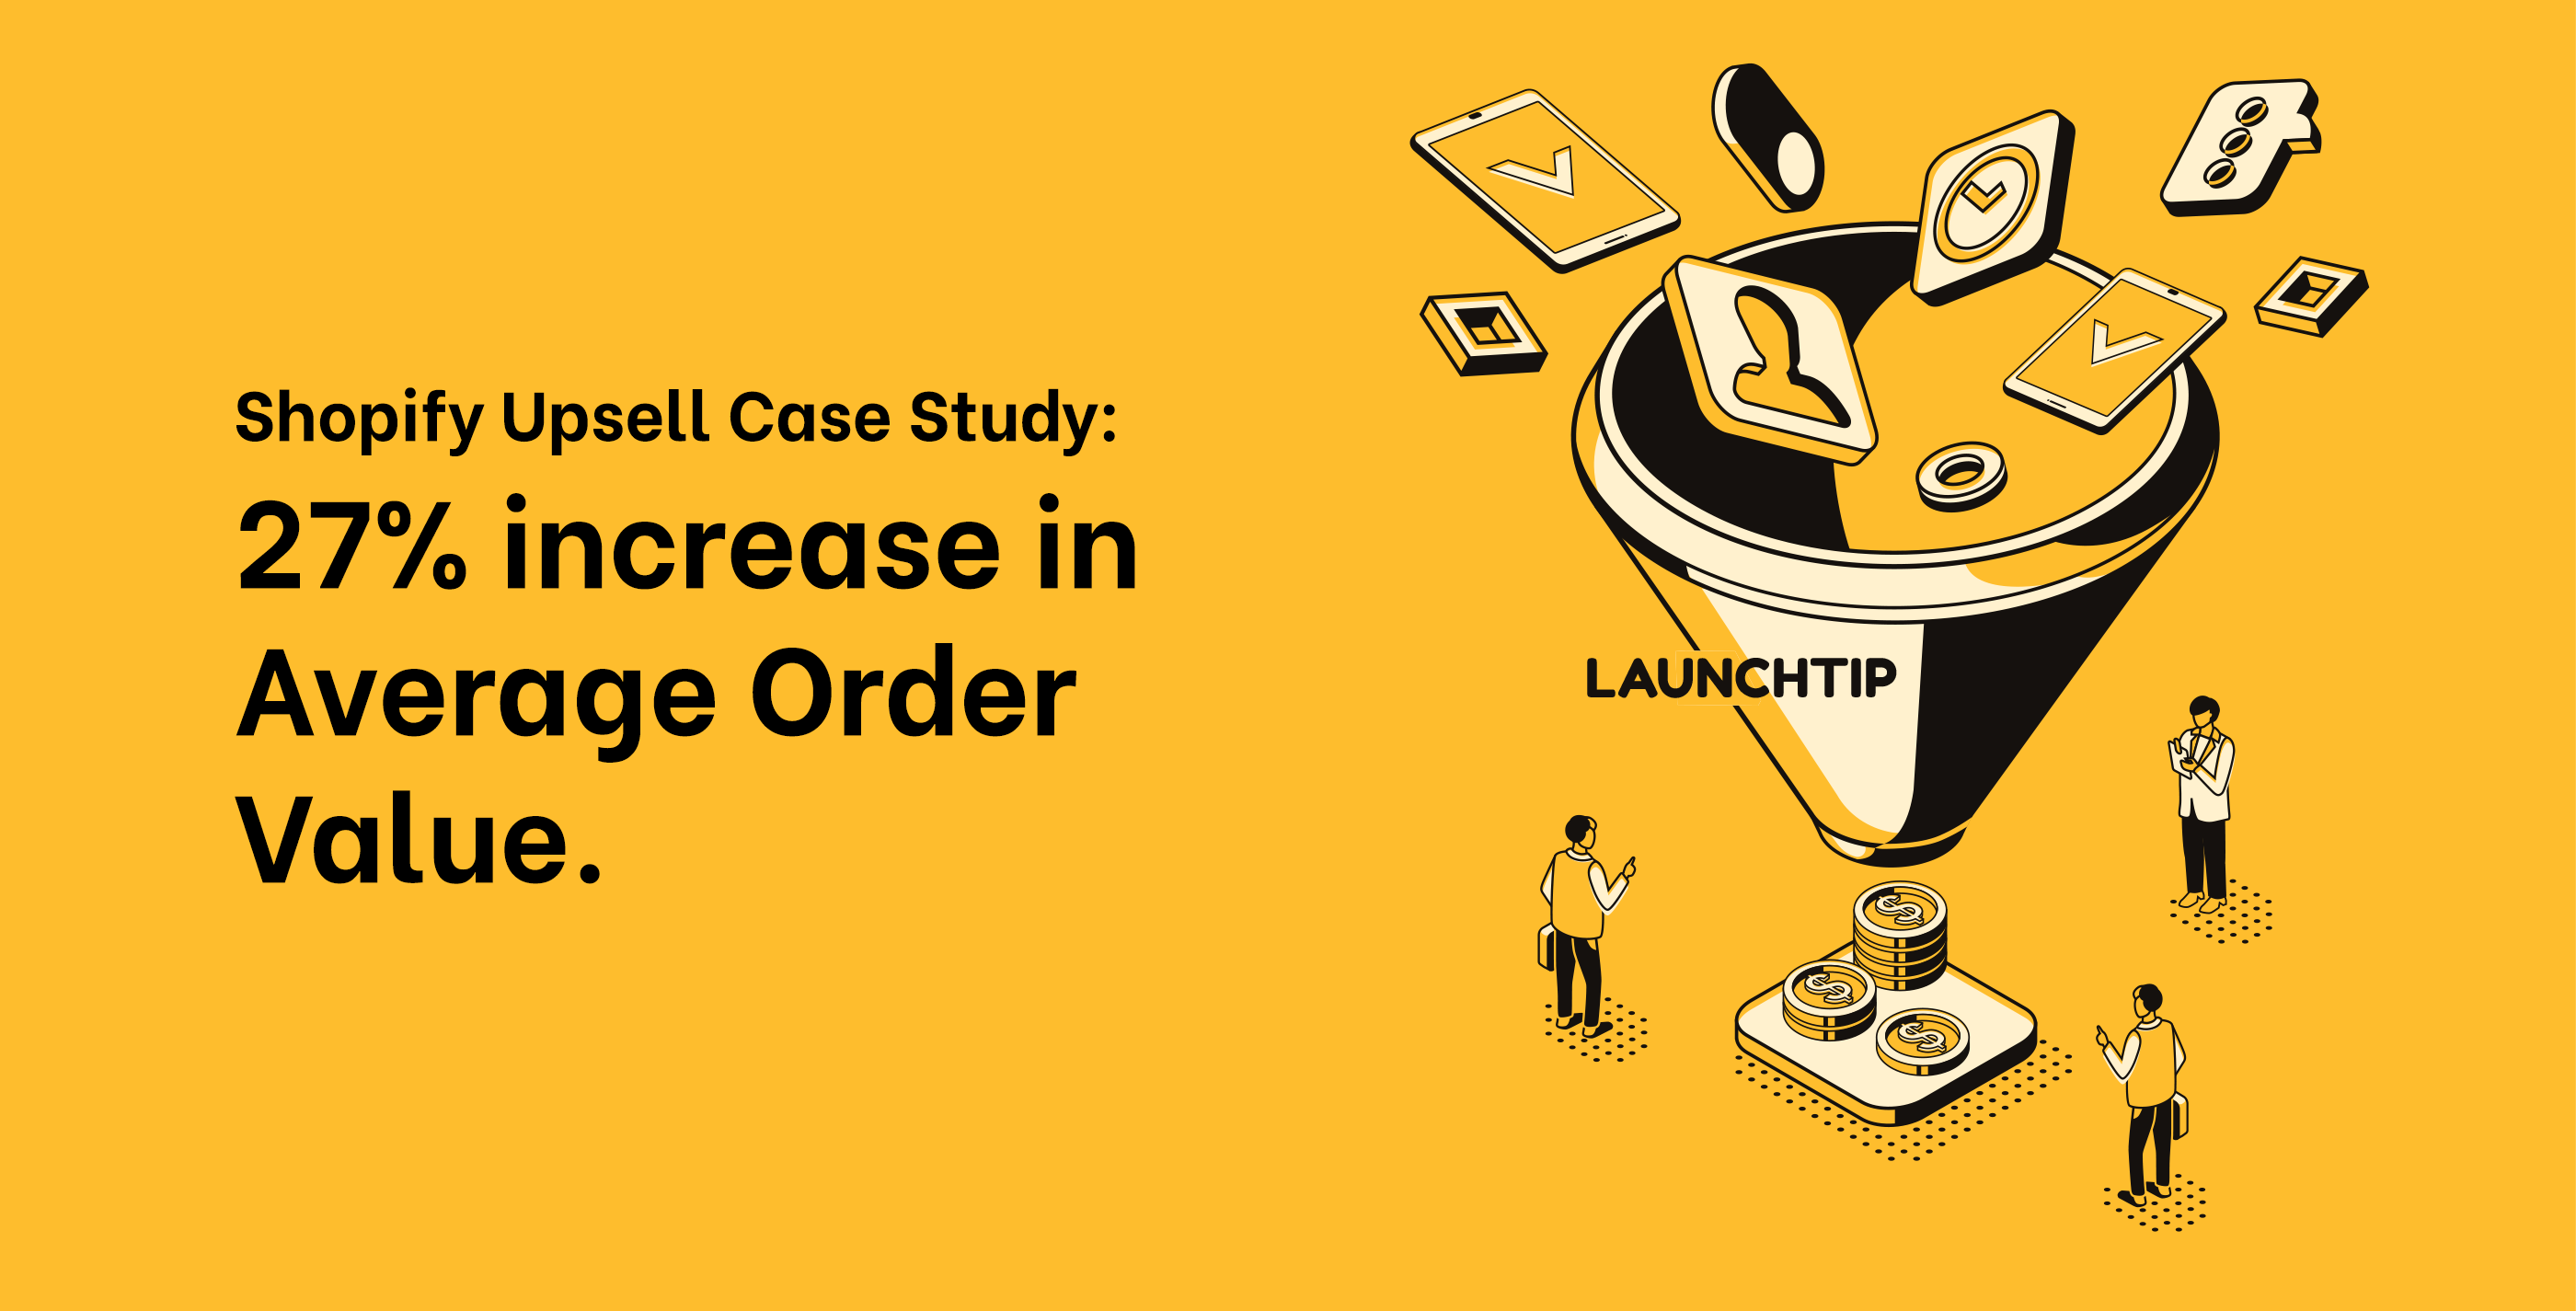 Shopify Upsell Case Study: 27% increase in Average Order Value